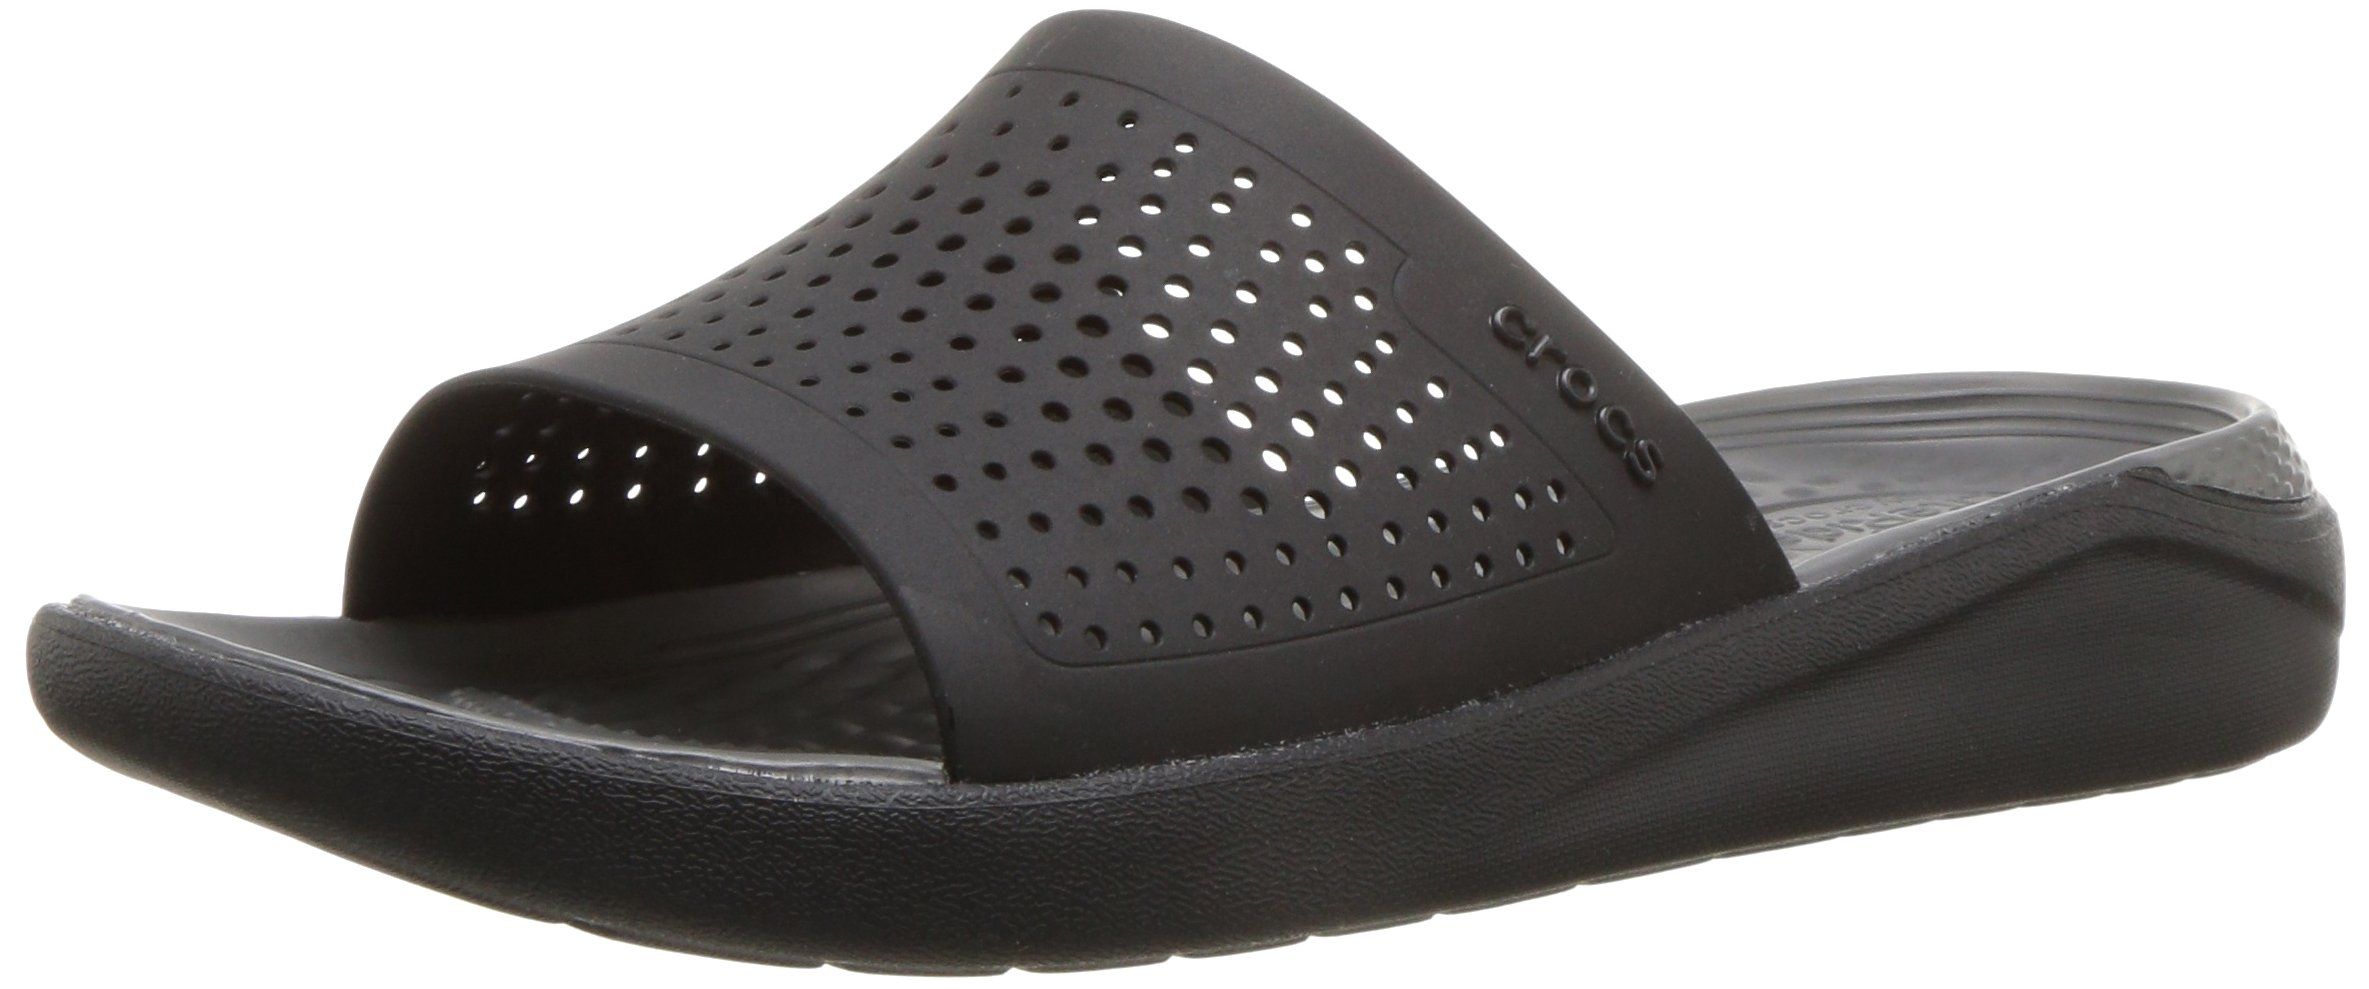 Crocs Unisex-Adults Literide Slide Sandal, Black/Slate Grey, 8 US Men/10 US Women by Crocs (Image #1)